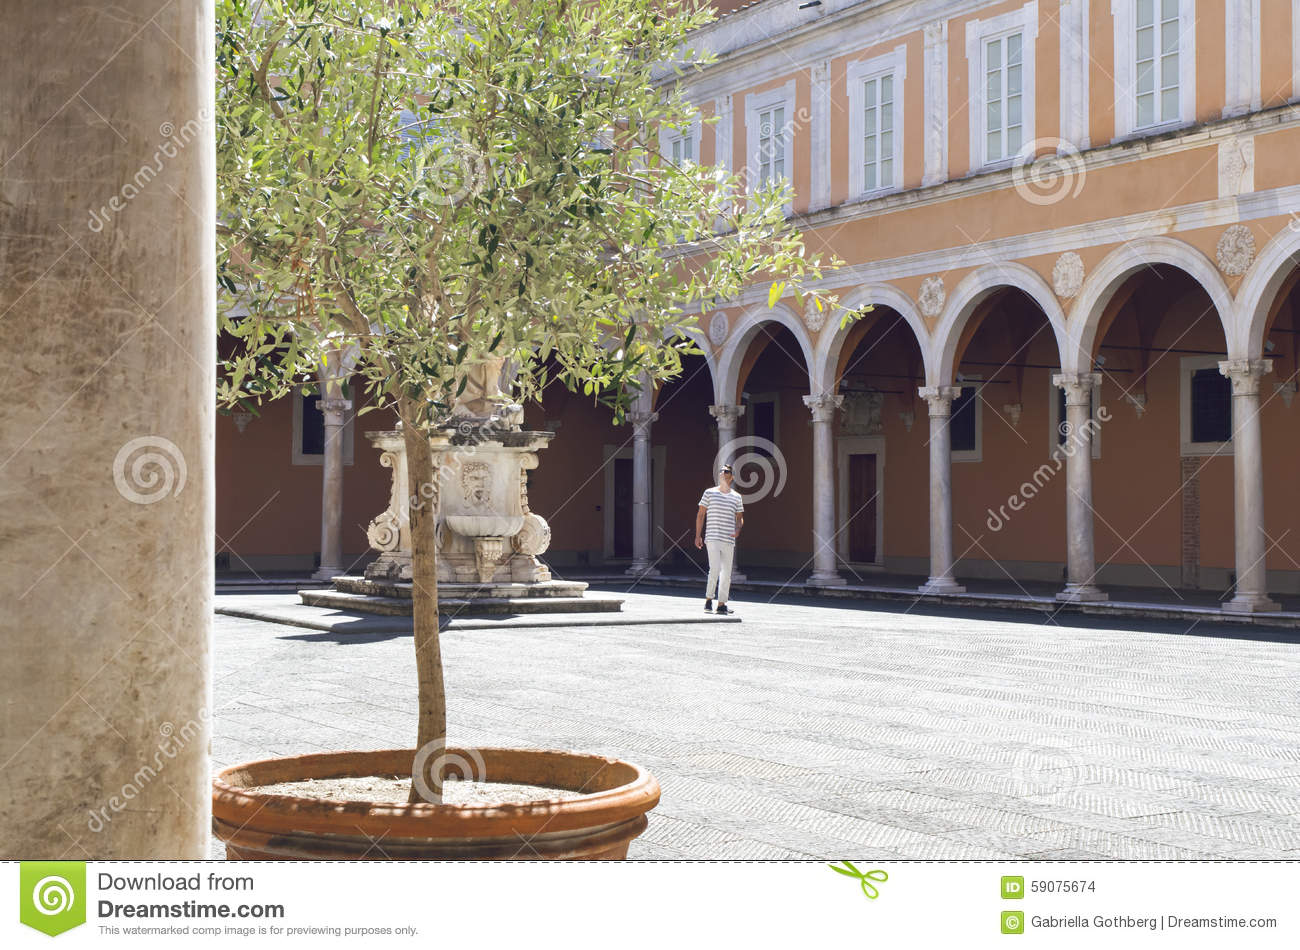 Man in old courtyard with vaults and a statue, in Pisa, Italy.